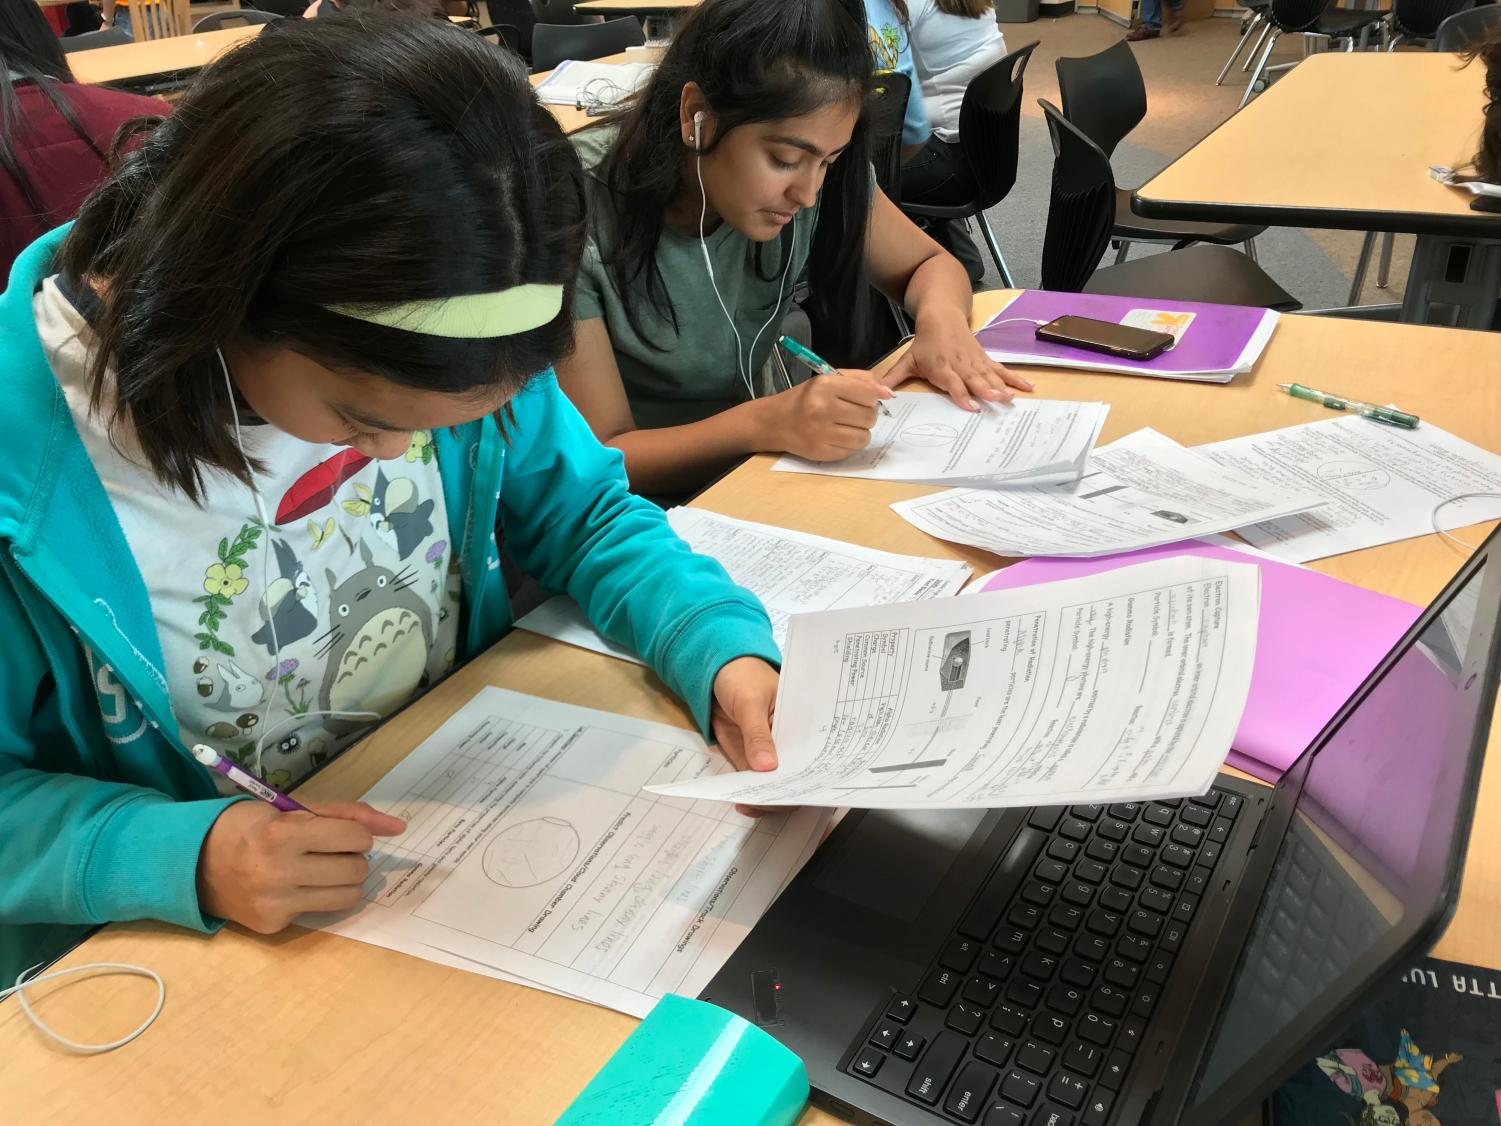 Sophomores Mandy Tran and Anika Bhushan work in the HUB, utilizing the support from tutors and chromebooks, during their GAEL period.